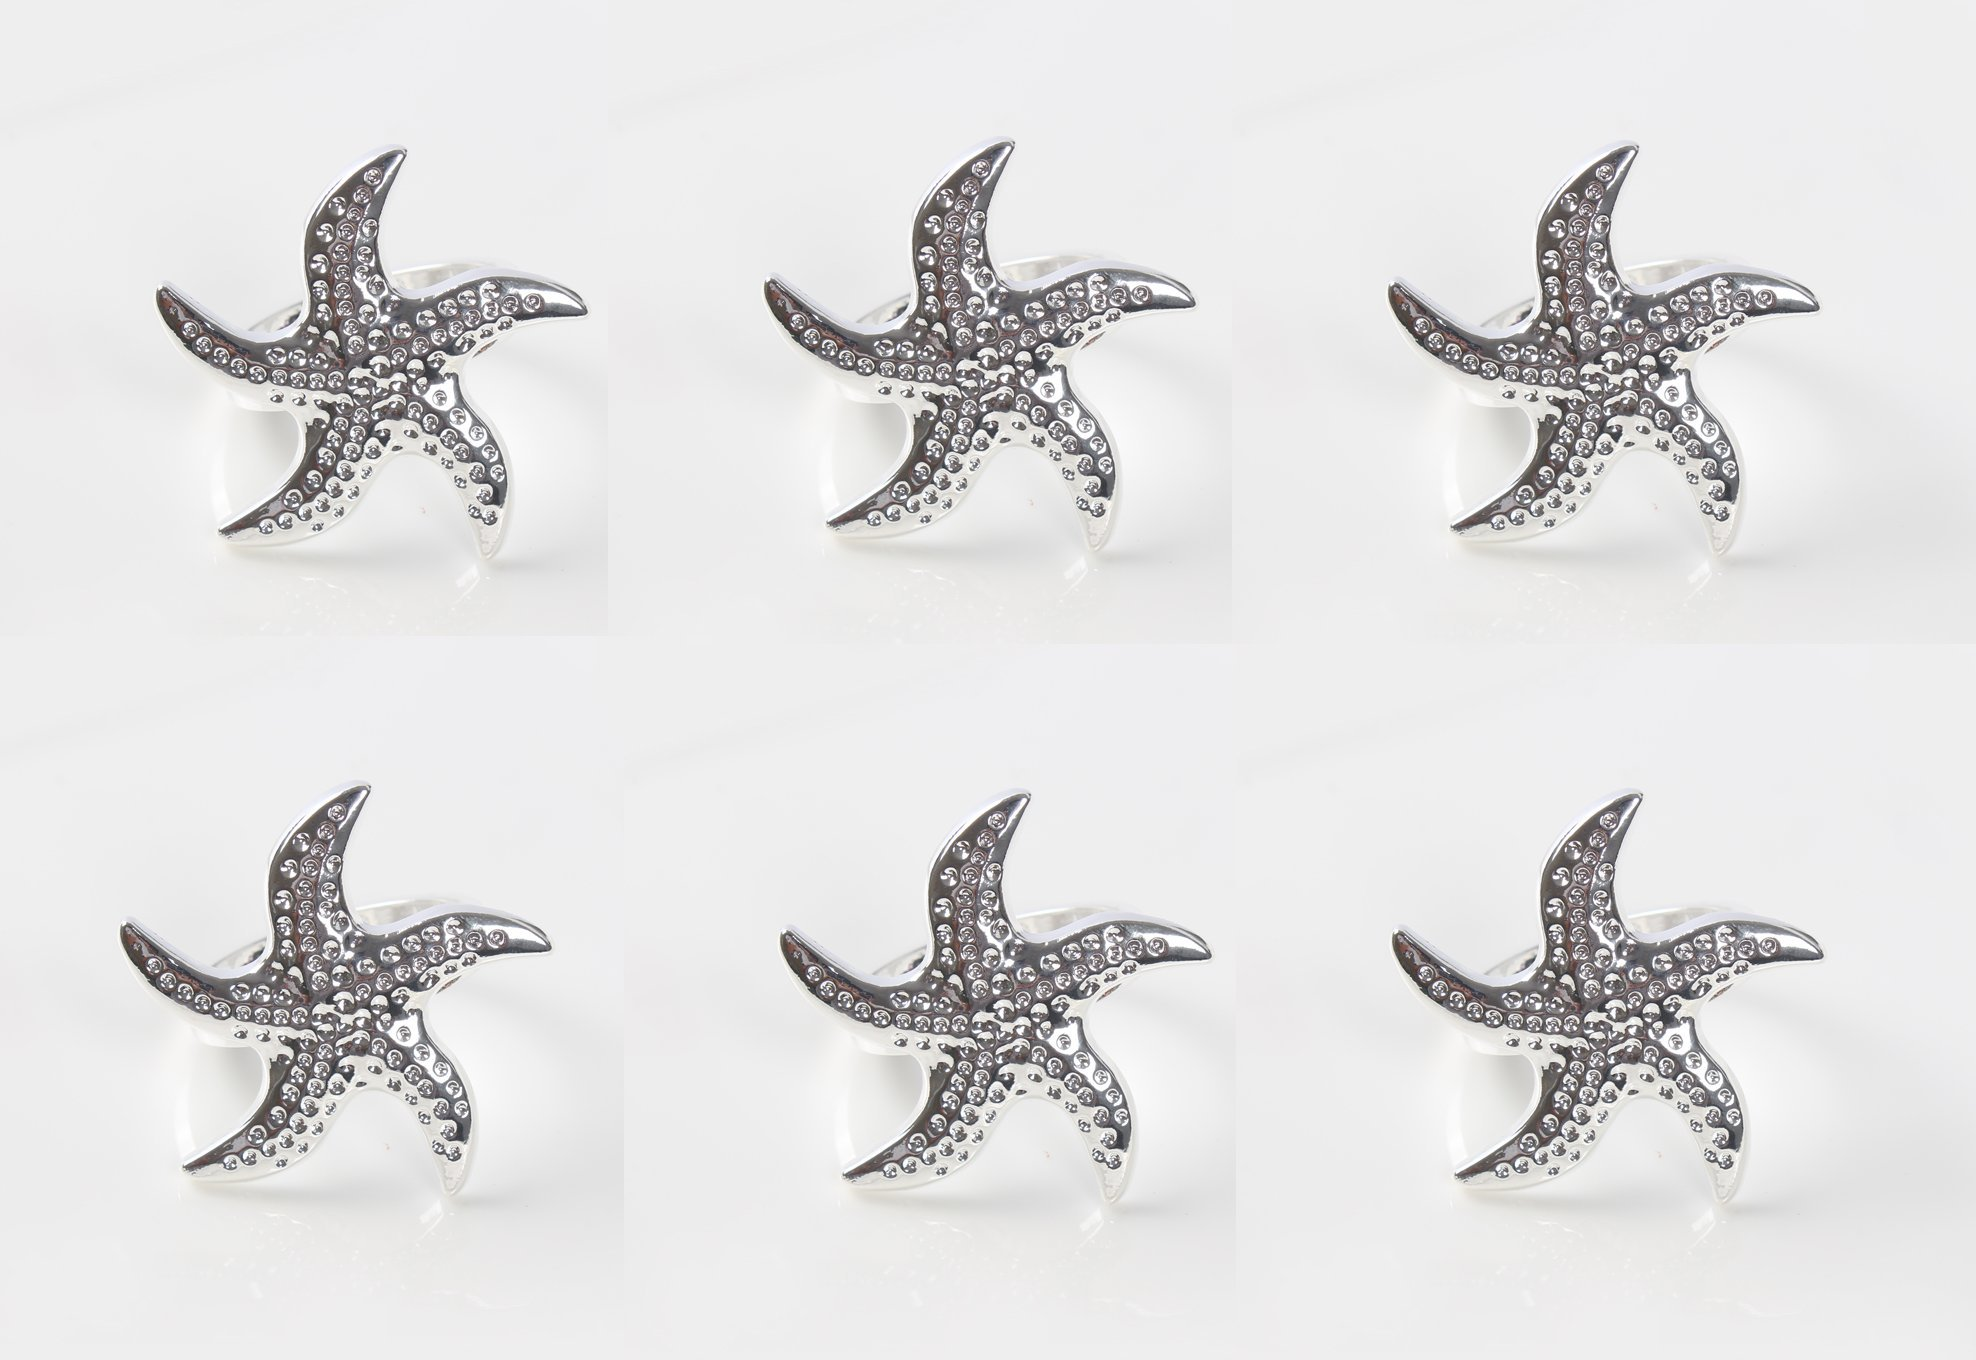 Astra shop Beautiful Starfish Napkin Rings Buckles for Dinners, Parties, Wedding Supplies, Set of 6